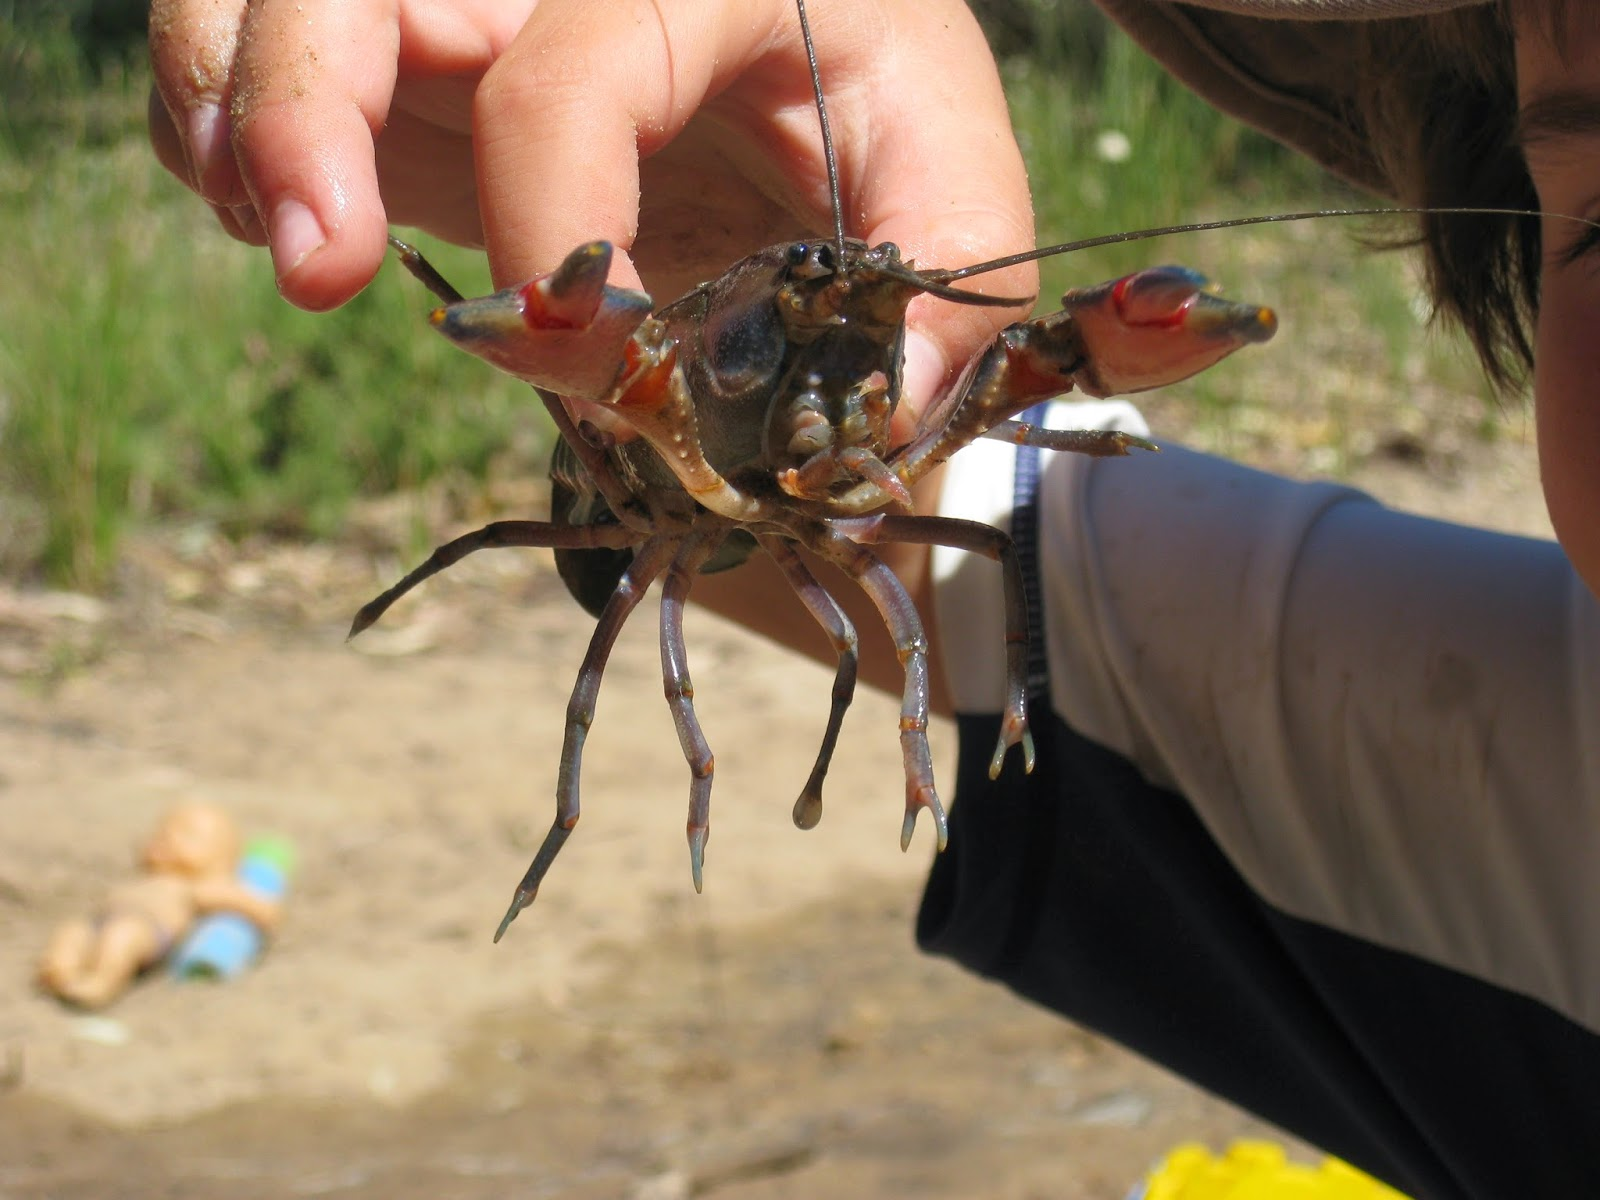 catching a yabby when camping